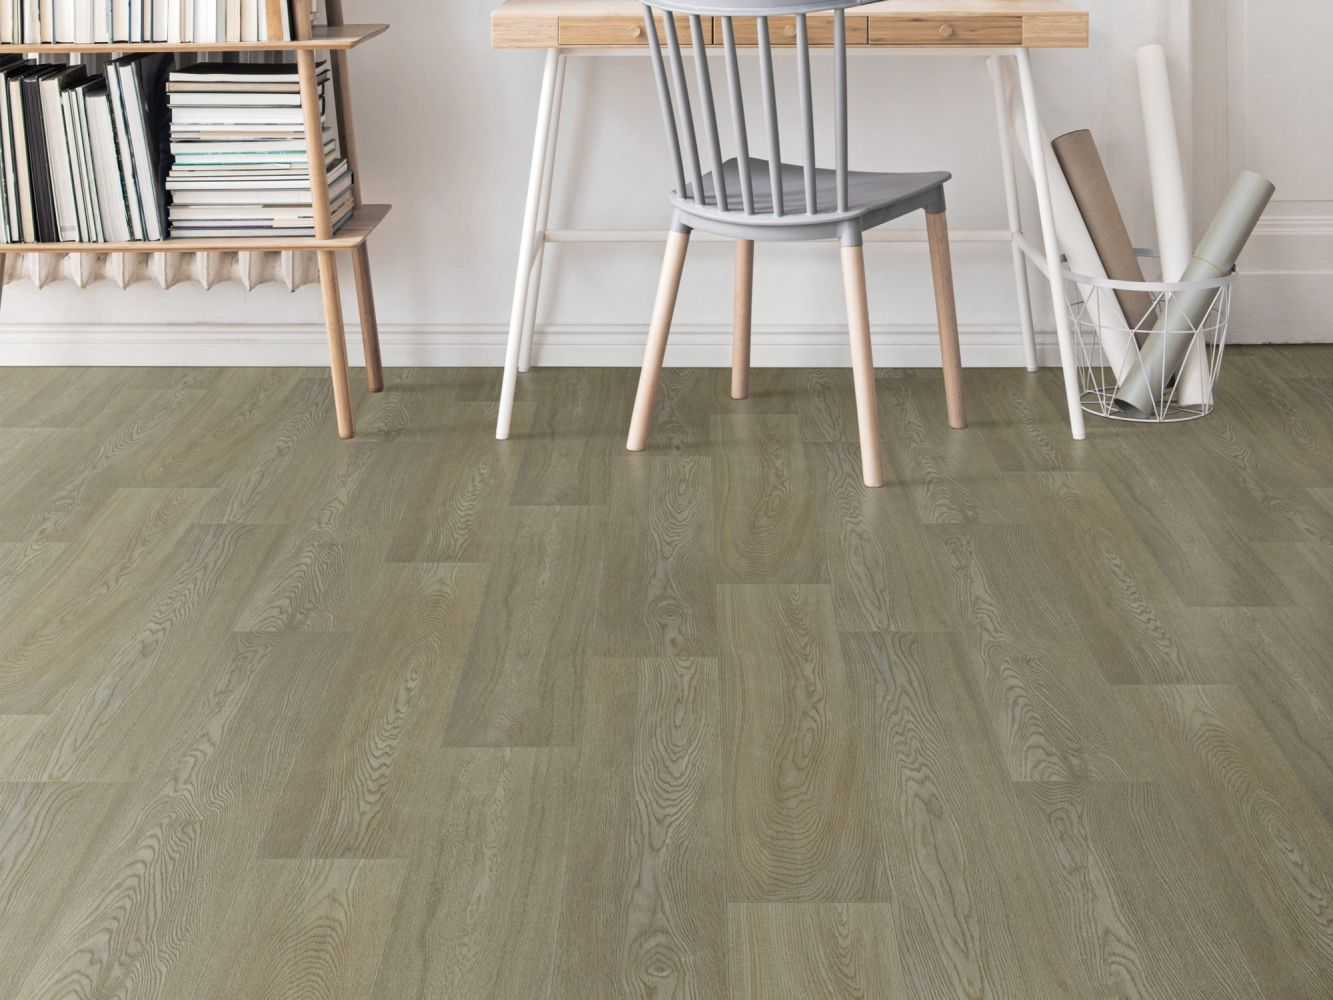 Shaw Floors Resilient Residential Urban Woodlands 65g Borbeck 00146_VG088